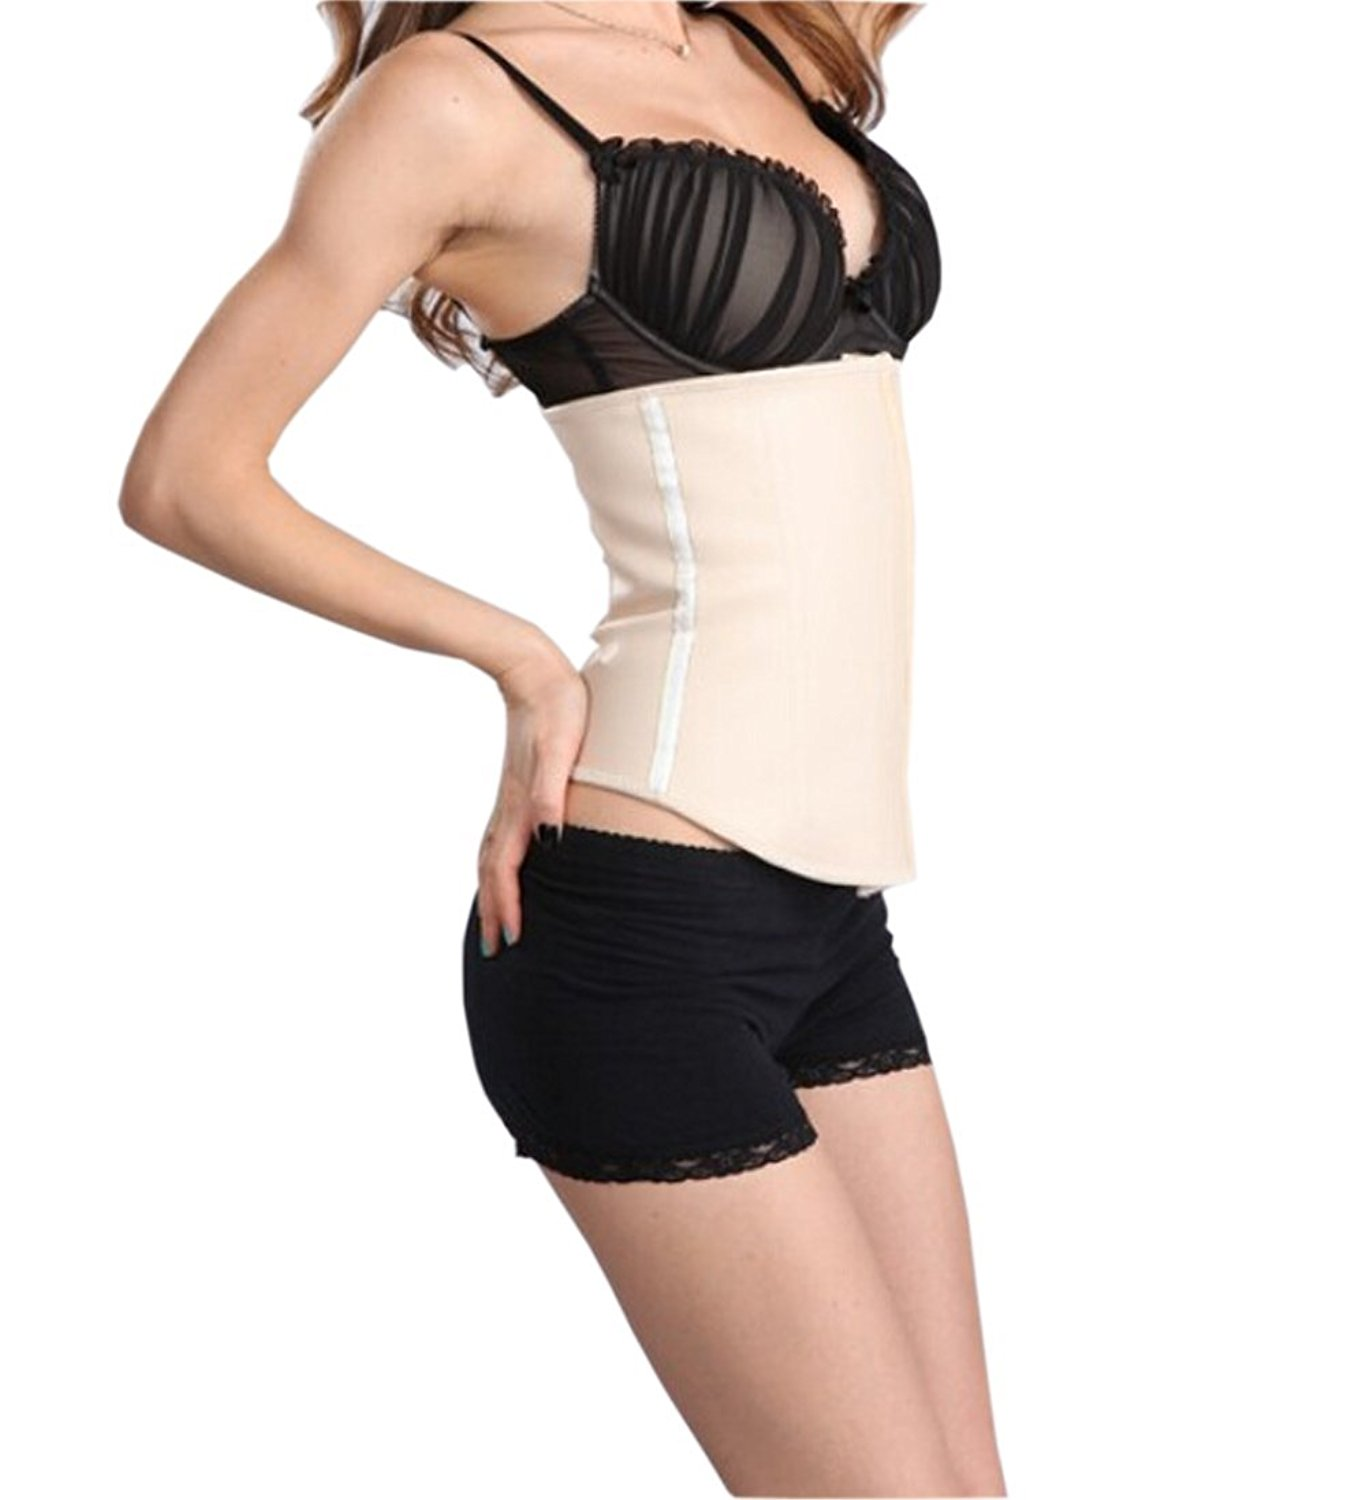 cd5e7ea503a Get Quotations · Modotop Women s Sexy Black Working Clothes Shapewear Basque  Corset Top Bustier Mini Skirt Dress